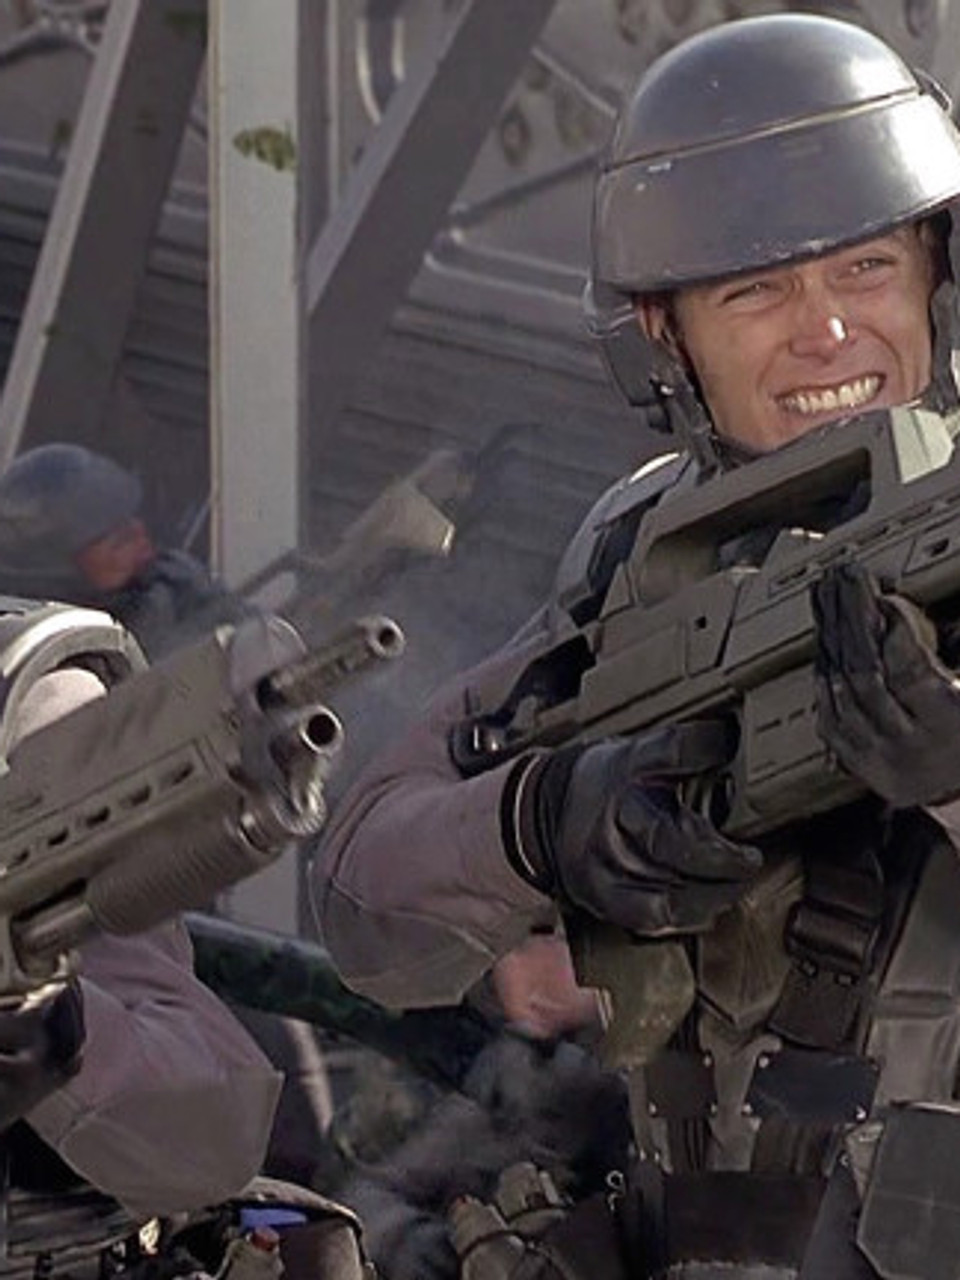 Drew S Reviews At Home Starship Troopers 1997 Wrgb